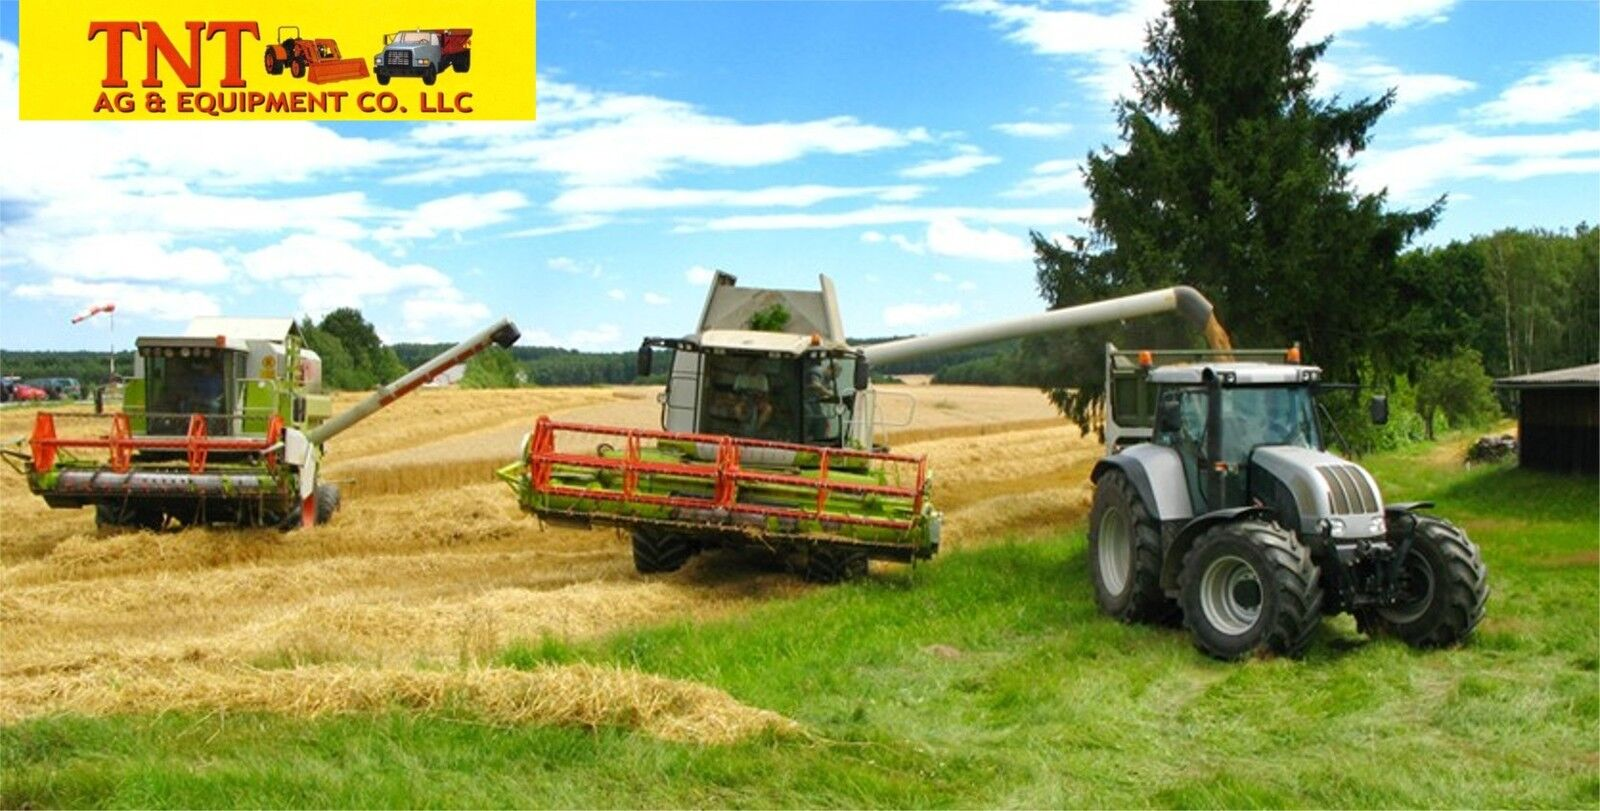 TNT Ag and Equipment